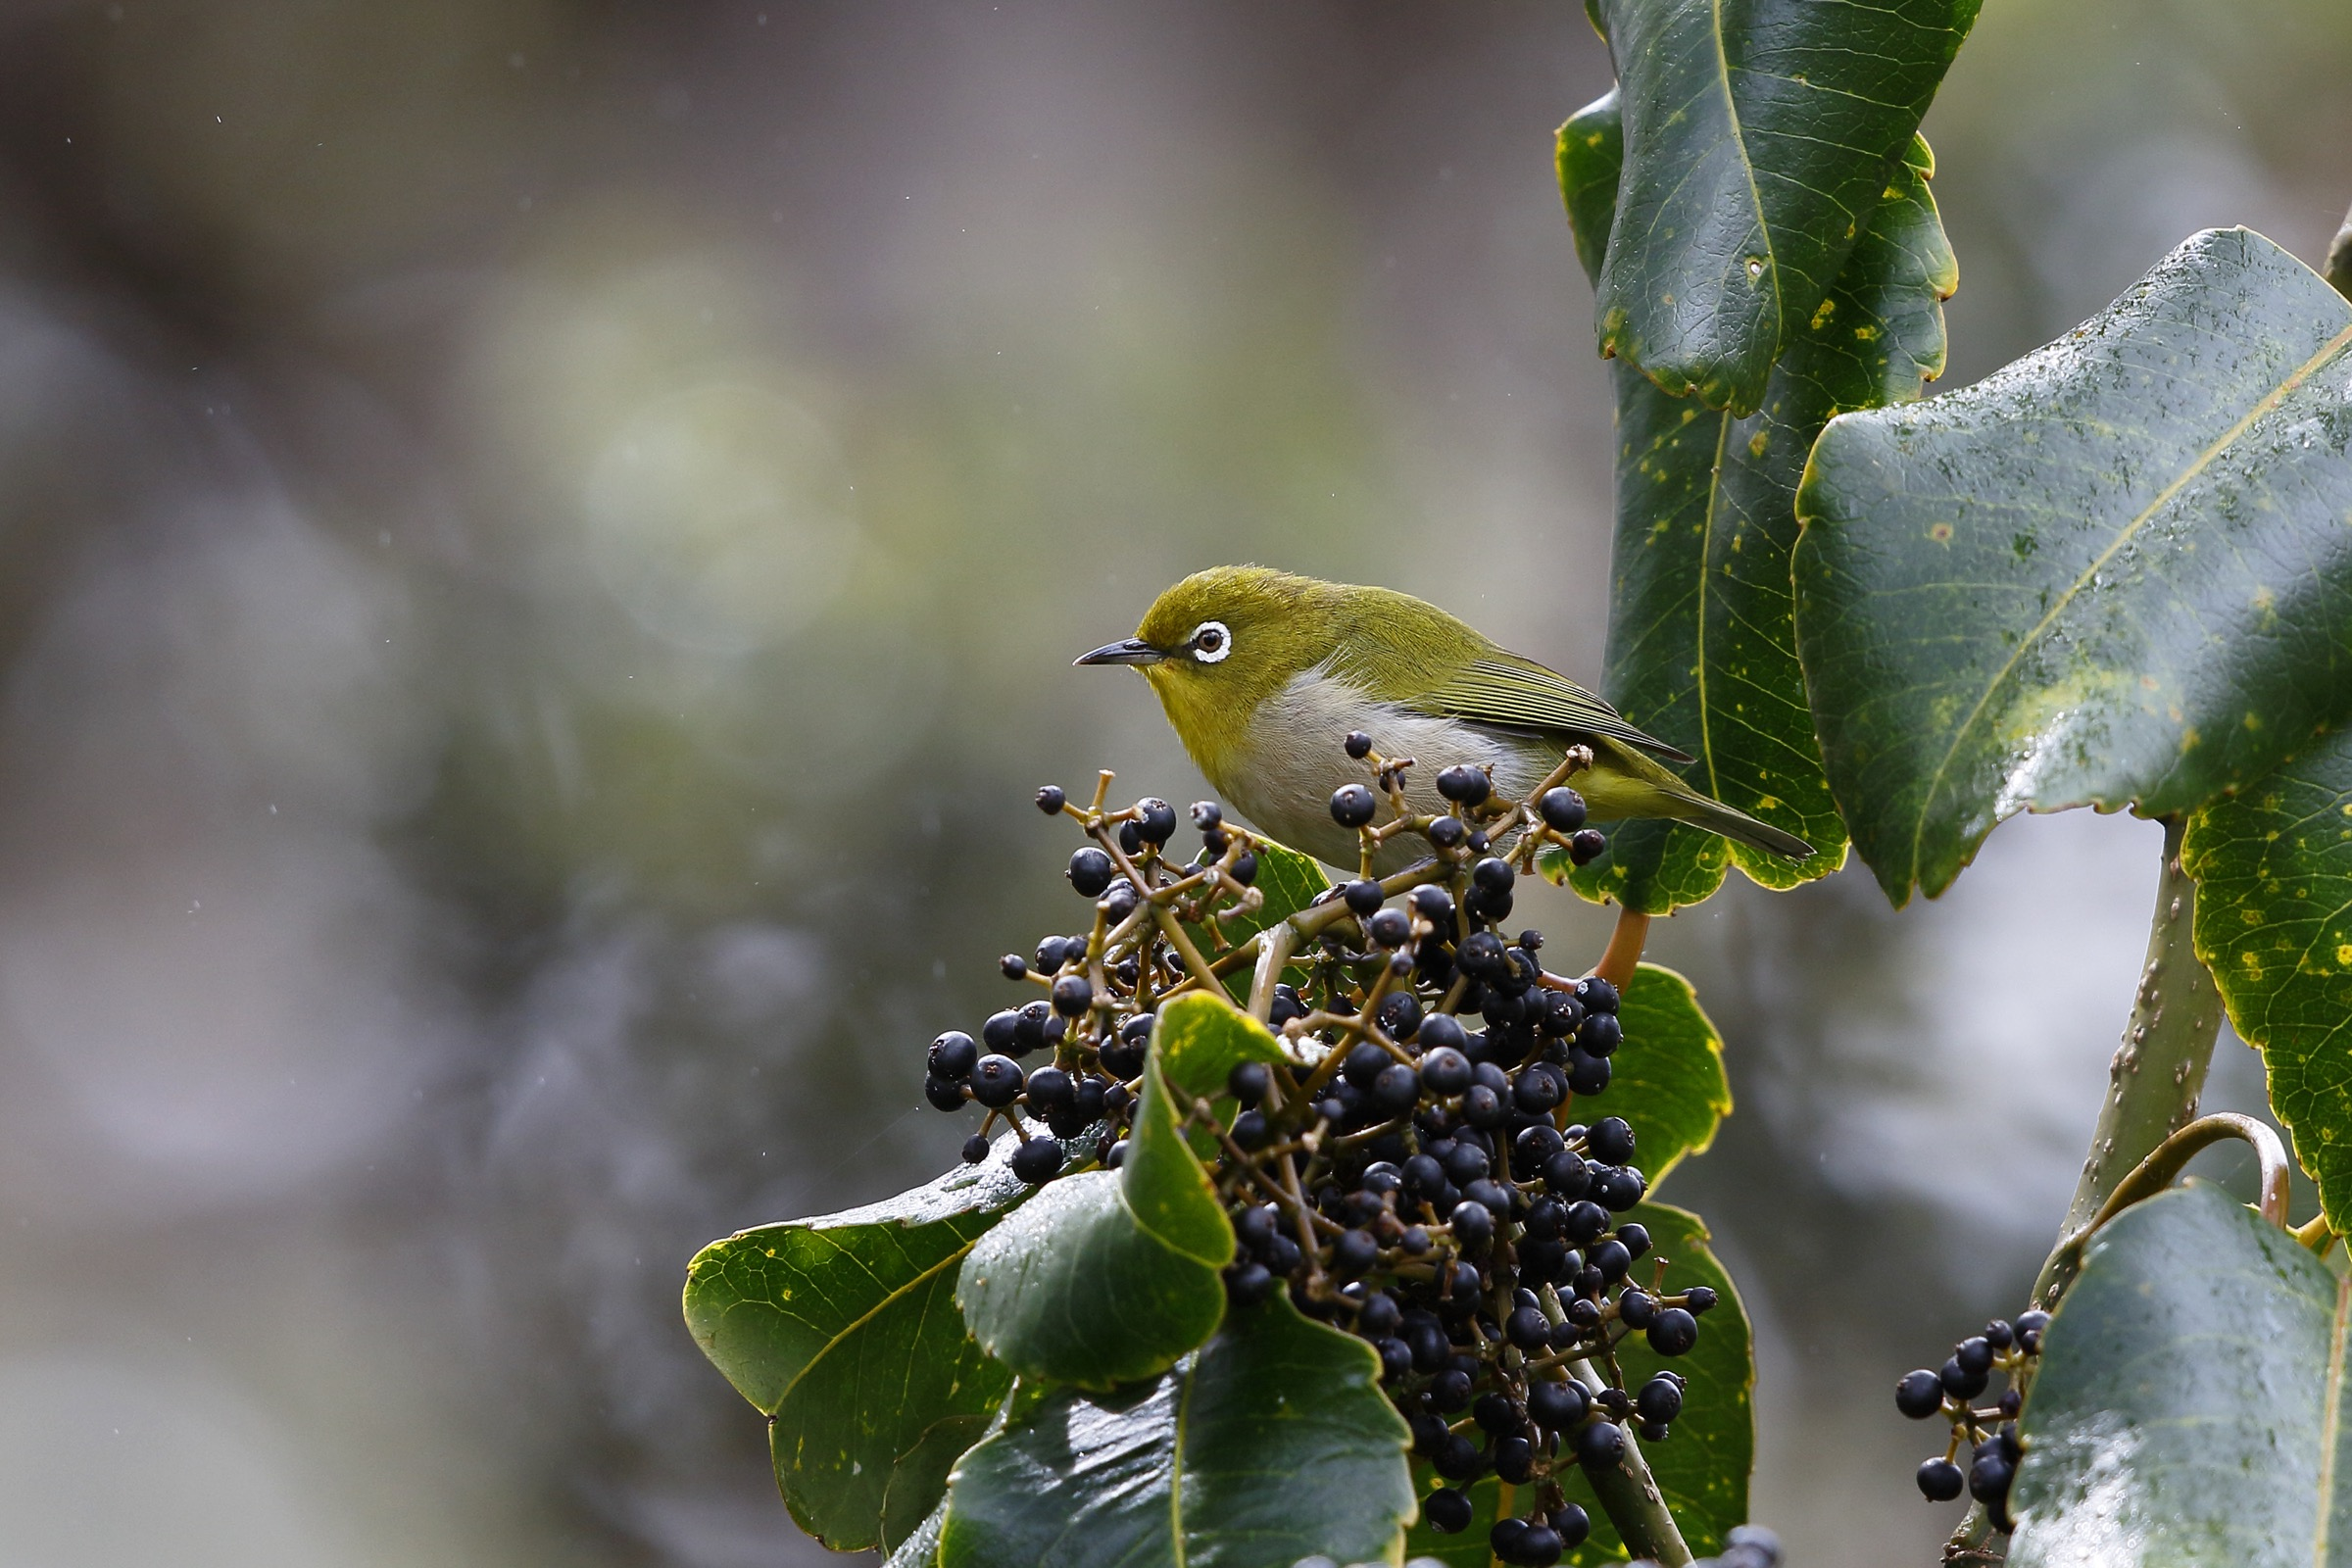 The Japanese white-eye (Zosterops japonicas), an invasive species in Hawaii, can be found in the Kīpahulu Biological Reserve. Originally a native of Asia, it is now vagrant in many parts of the world. Photograph by Jack Jeffrey